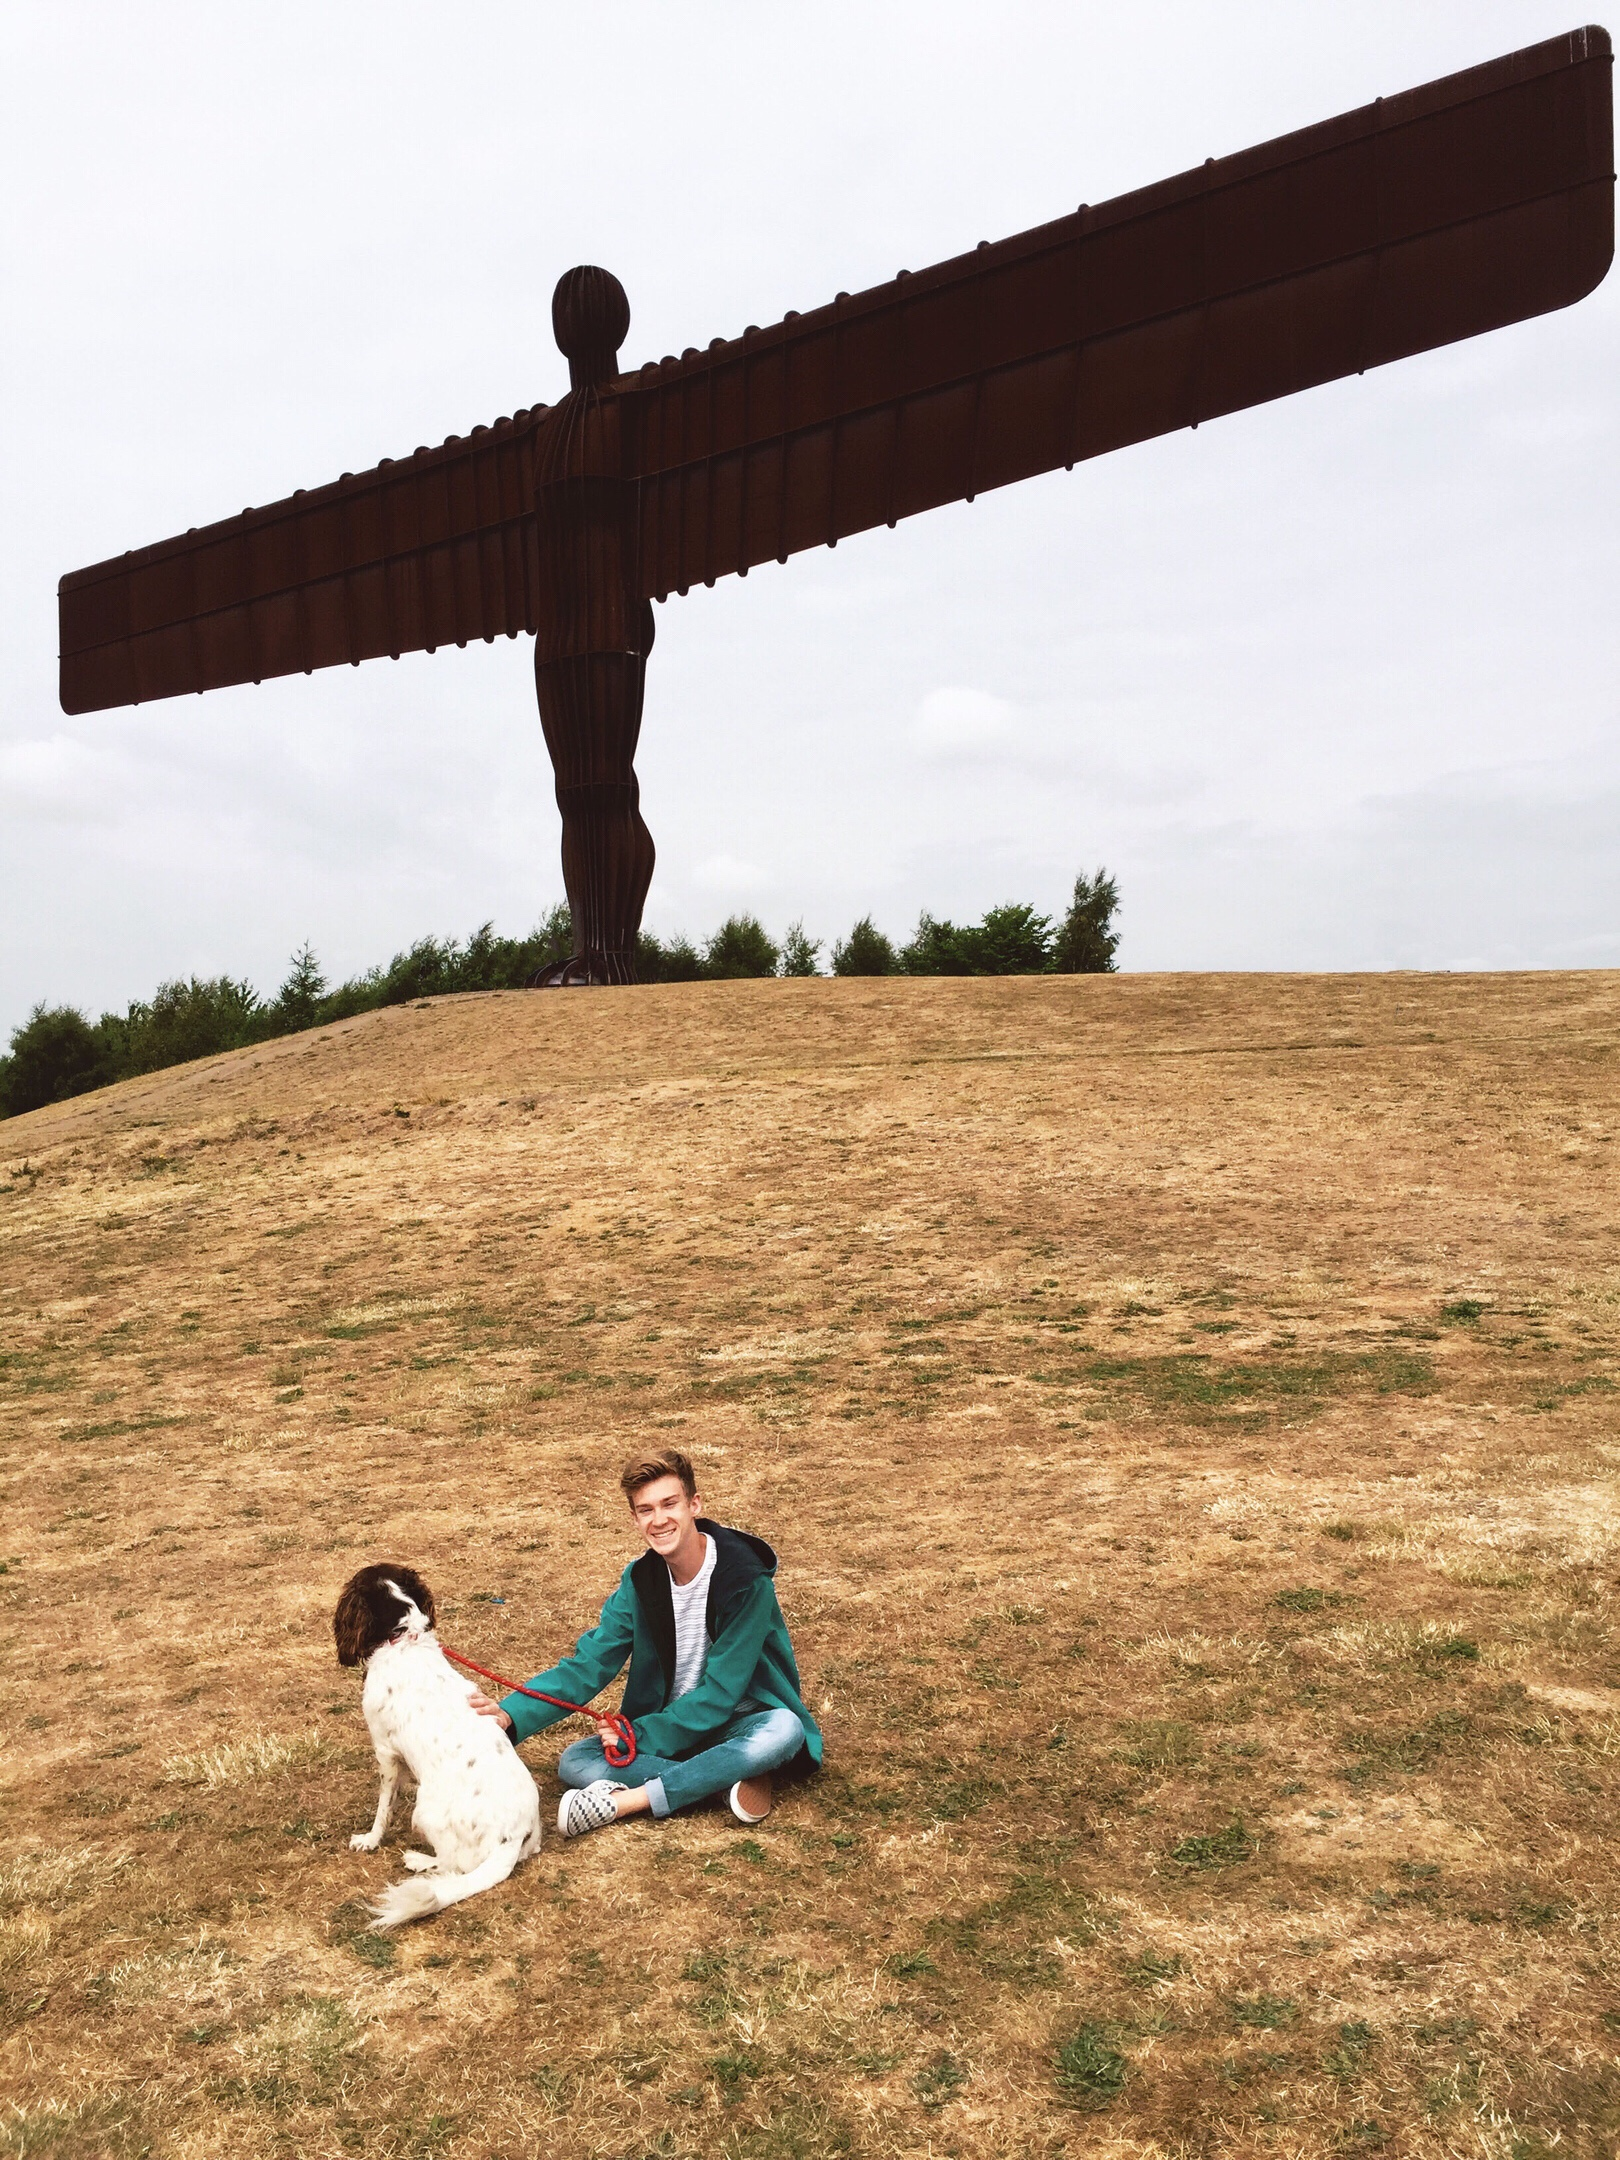 A boy sitting on the grass with a dog in front of the Angel of the North in Newcastle